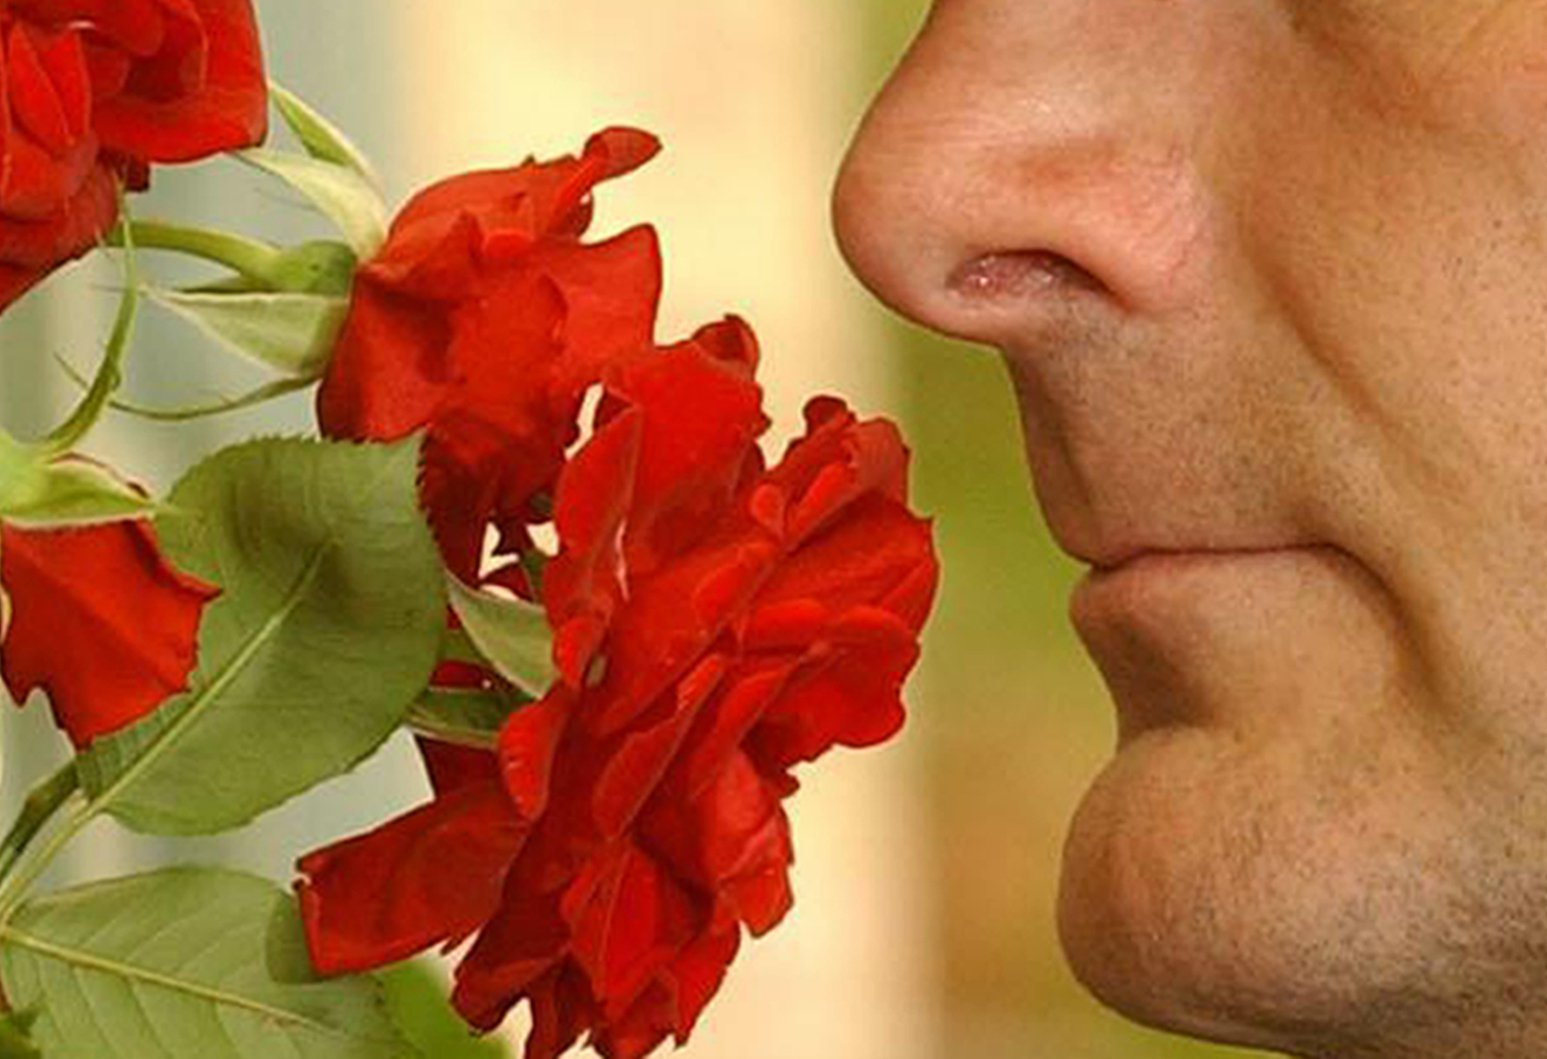 Embargoed to 2200 Monday April 29 Undated file photo of man smelling roses. A poor sense of smell may predict premature death, even among healthy individuals, research suggests. PRESS ASSOCIATION Photo. Issue date: Monday April 29, 2019. Older adults who had trouble recognising or telling apart common odours were almost 50% more likely to die over a 10-year period than individuals with sensitive noses, the study showed. See PA story HEALTH Smell. Photo credit should read: Stefan Rousseau/PA Wire